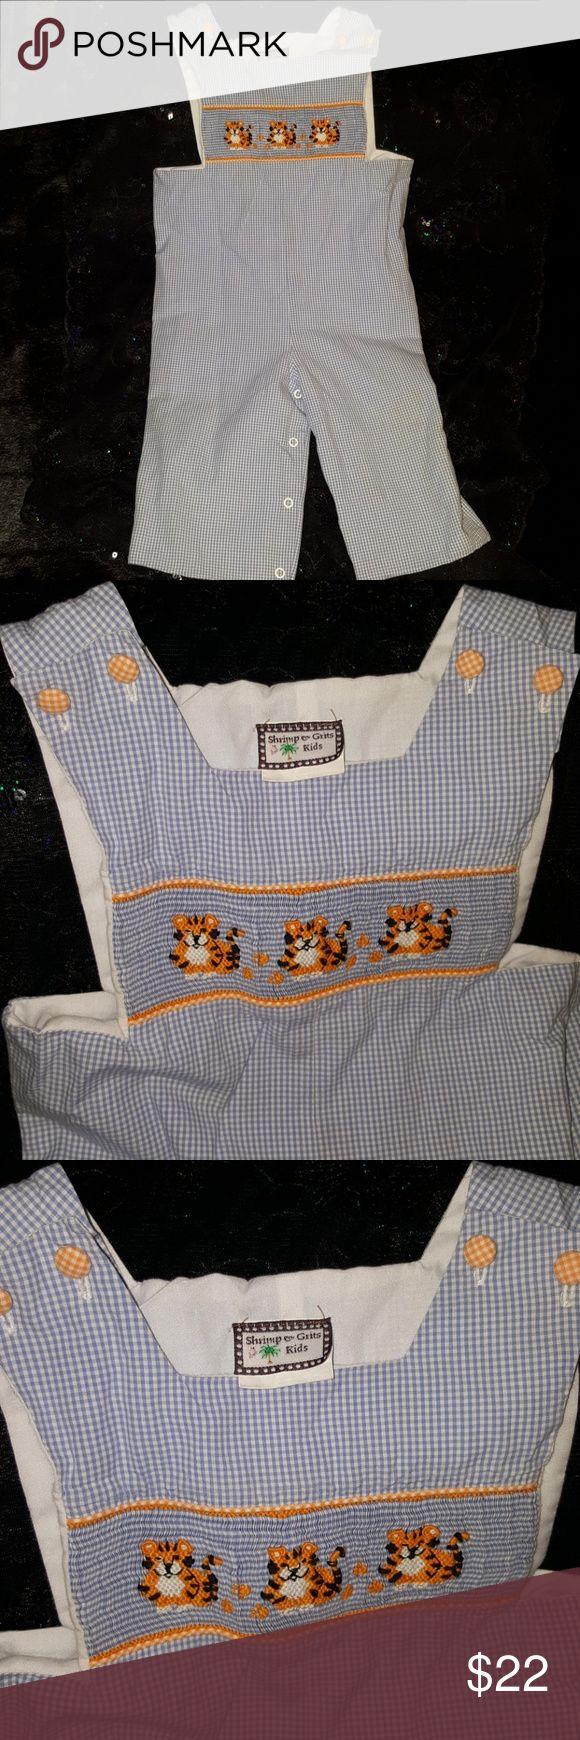 Shrimp and Grits embroidery smocked LSU Tigers Embroidery and smocked blind jumper shrimp and Grits Kids One Pieces